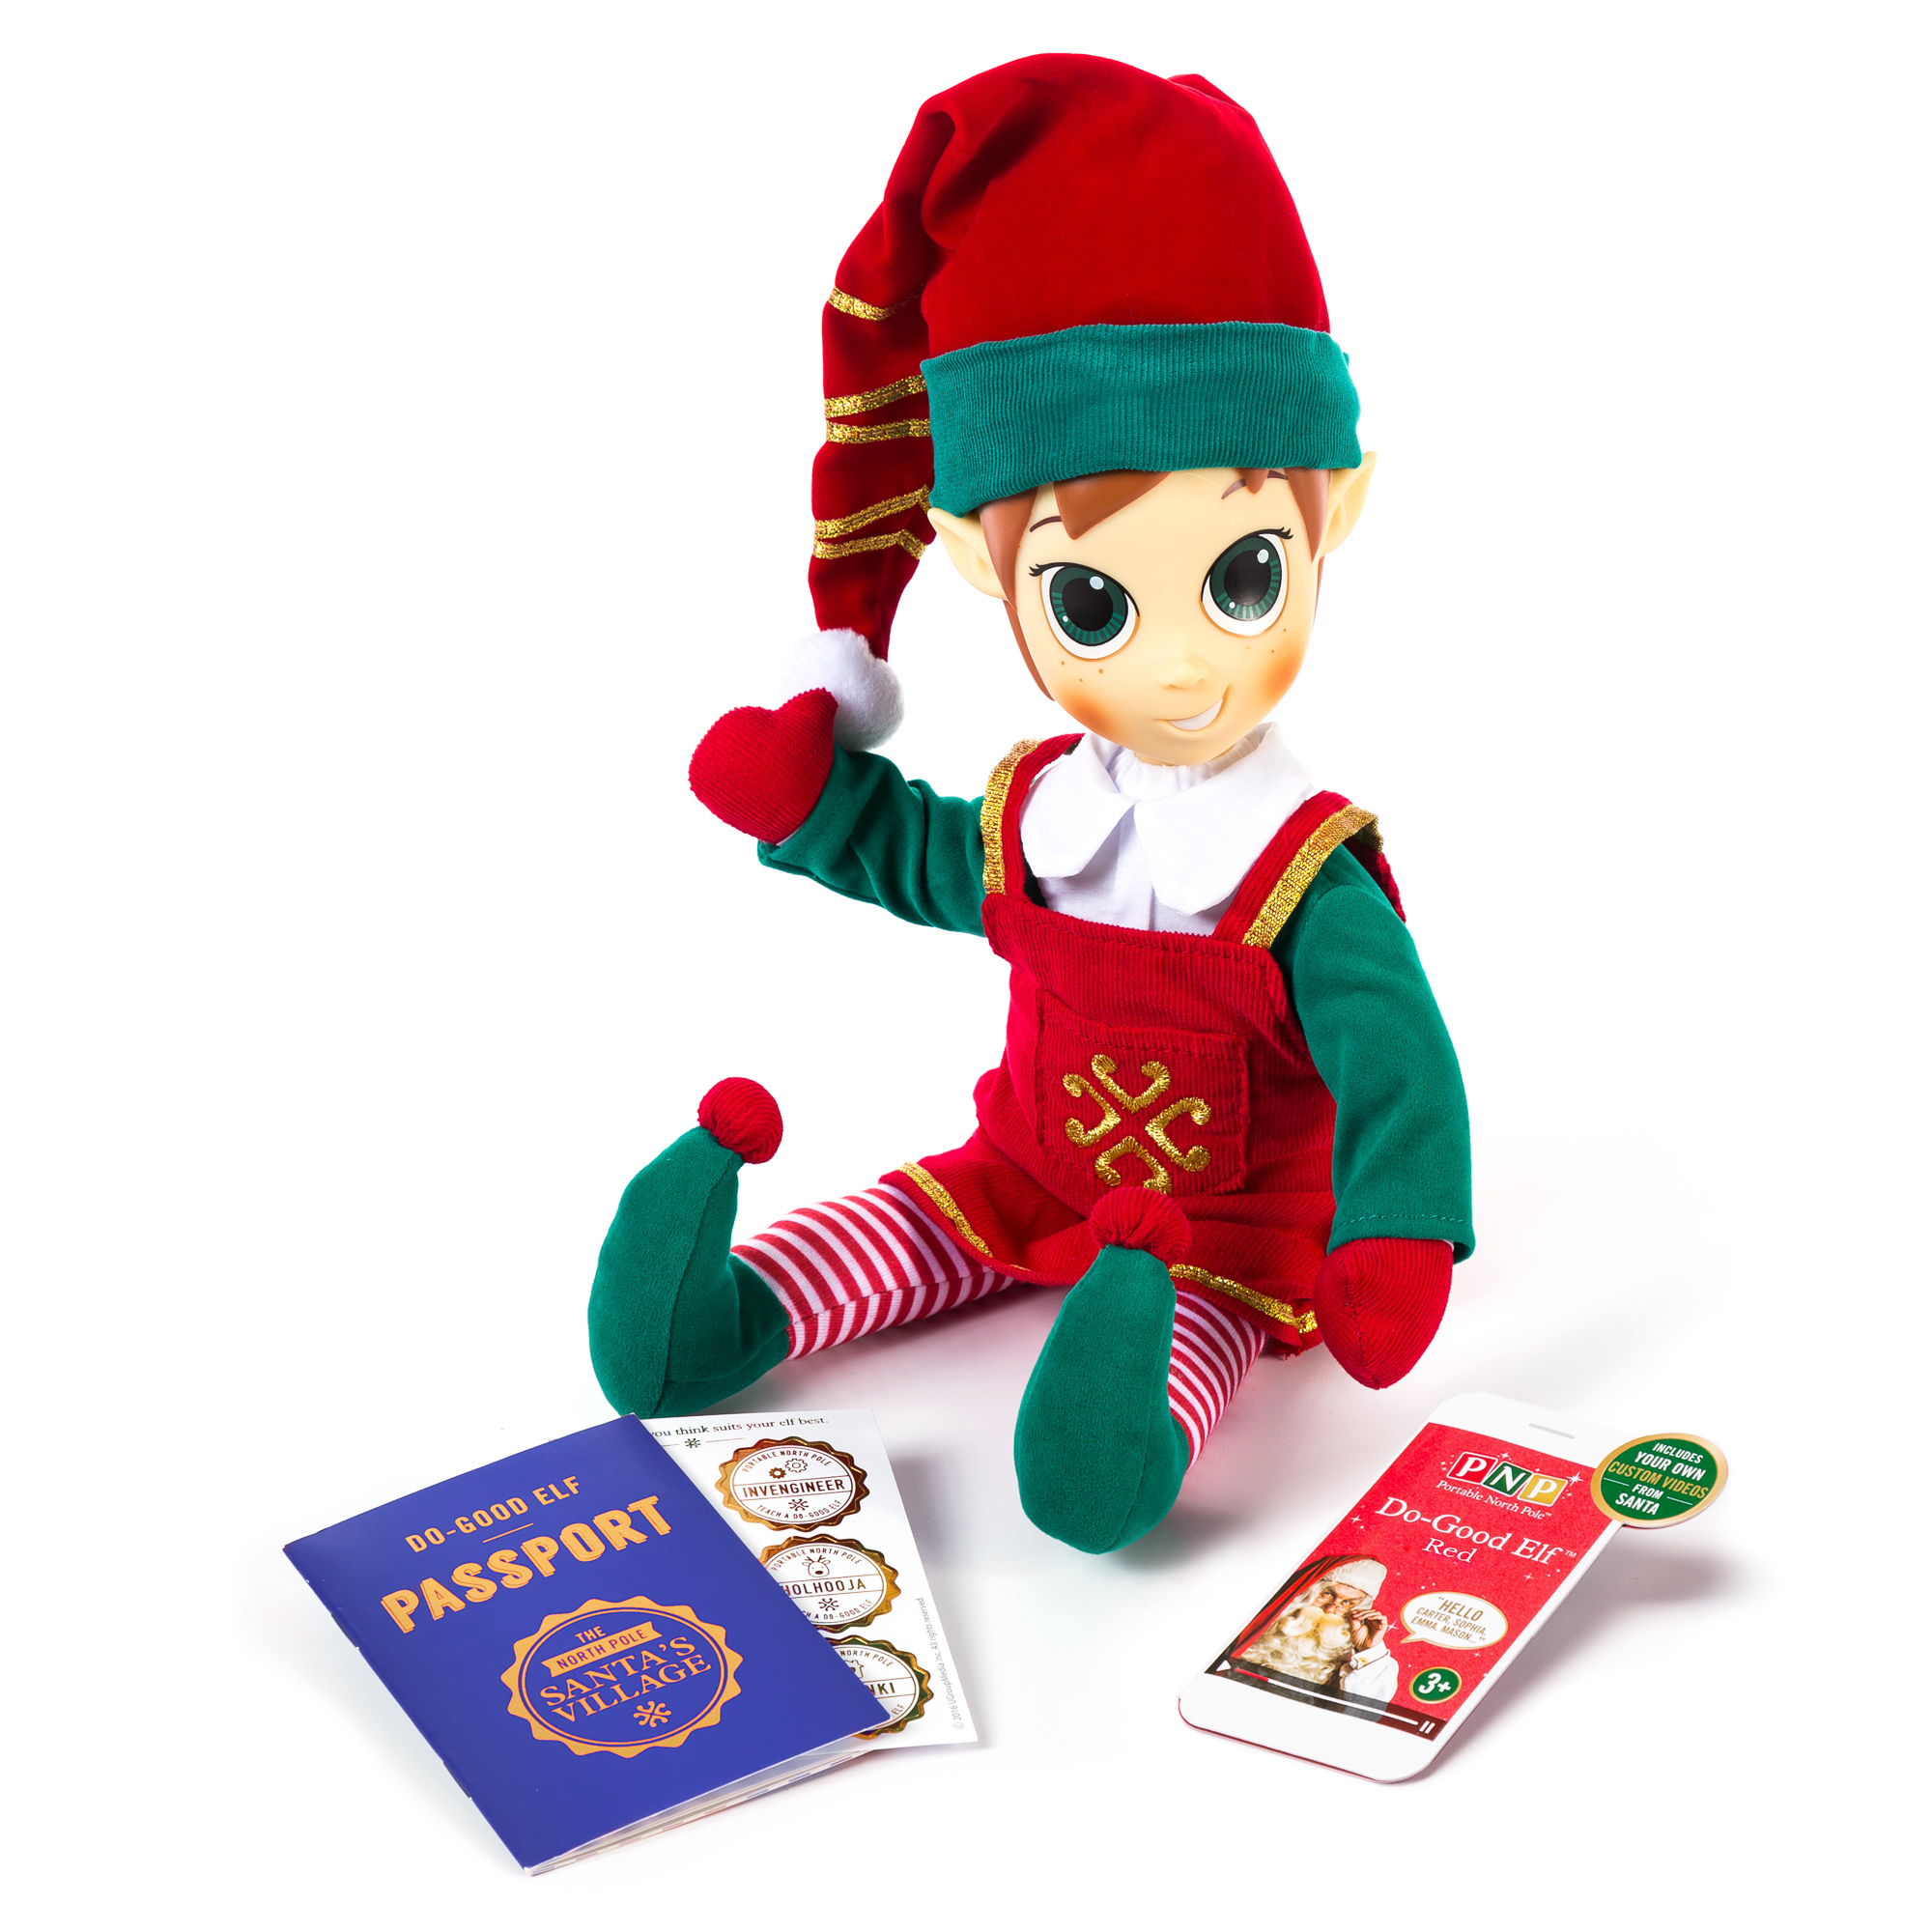 Giveaway - Three Merry Christmas Gifts From The Portable North Pole!